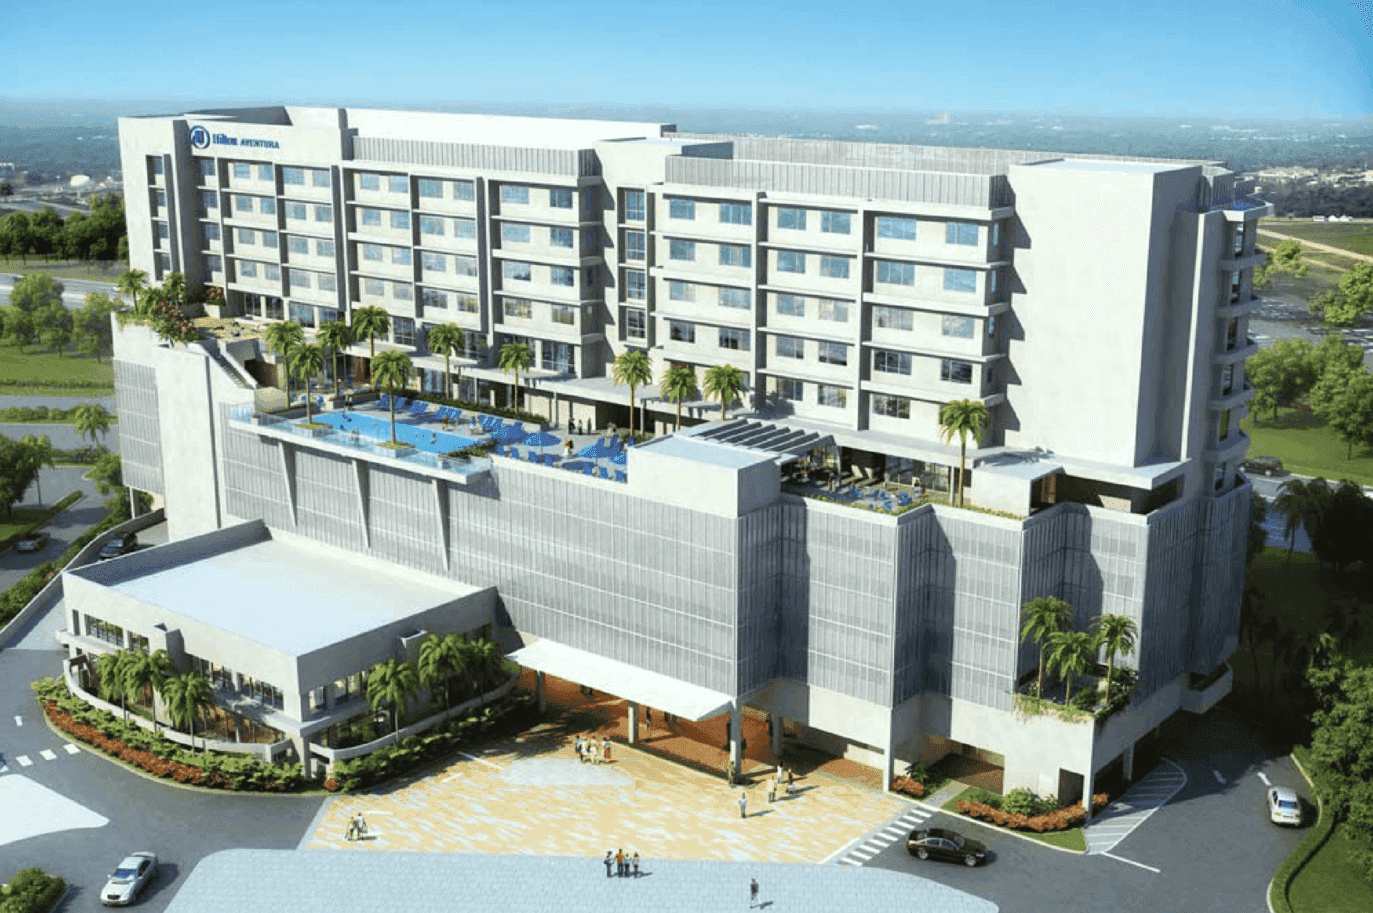 Luxury Hotel Project in Aventura, FL, United States of America